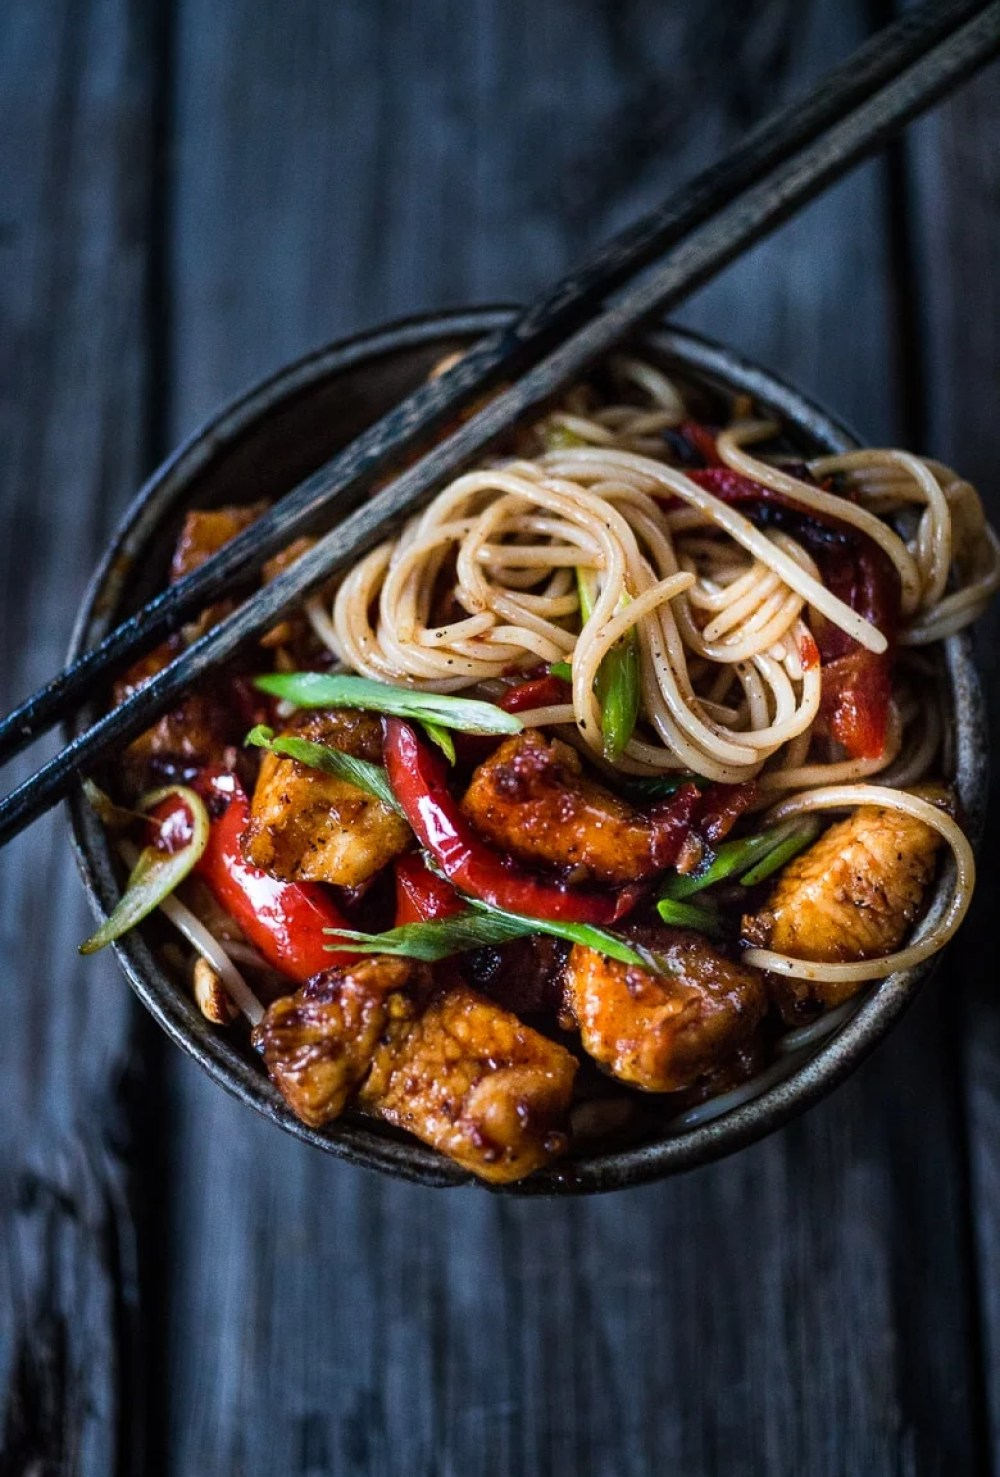 A simple delicious recipe for Kung Pao Noodles that can be made with chicken, tofu, fish, shrimp or veggies, served over noodles with a flavorful Kung Pao Sauce. | www.feasingathome.com